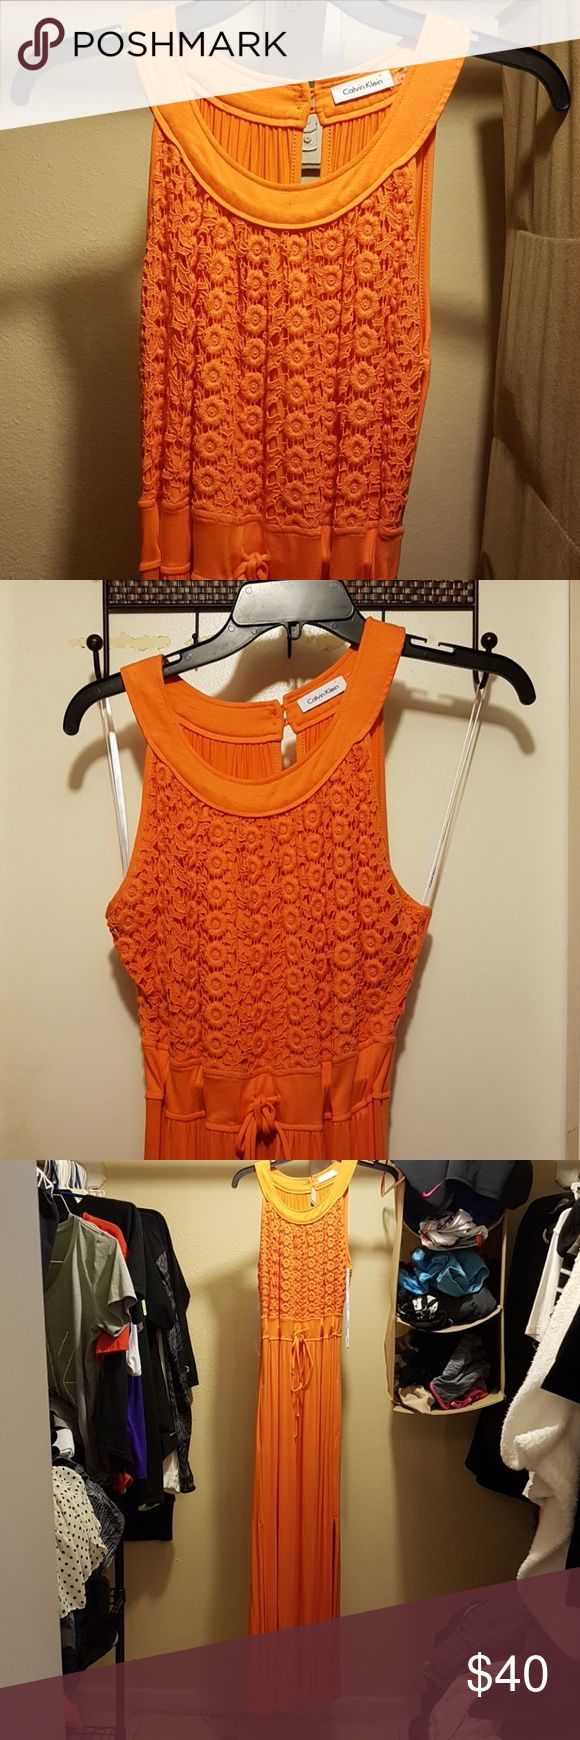 Calvin Klein maxi dress Beautiful Orange maxi dress with knit top and empire waist (makes you look smaller in waist) and tie with gold embellishments and it has pockets! Calvin Klein Dresses Maxi